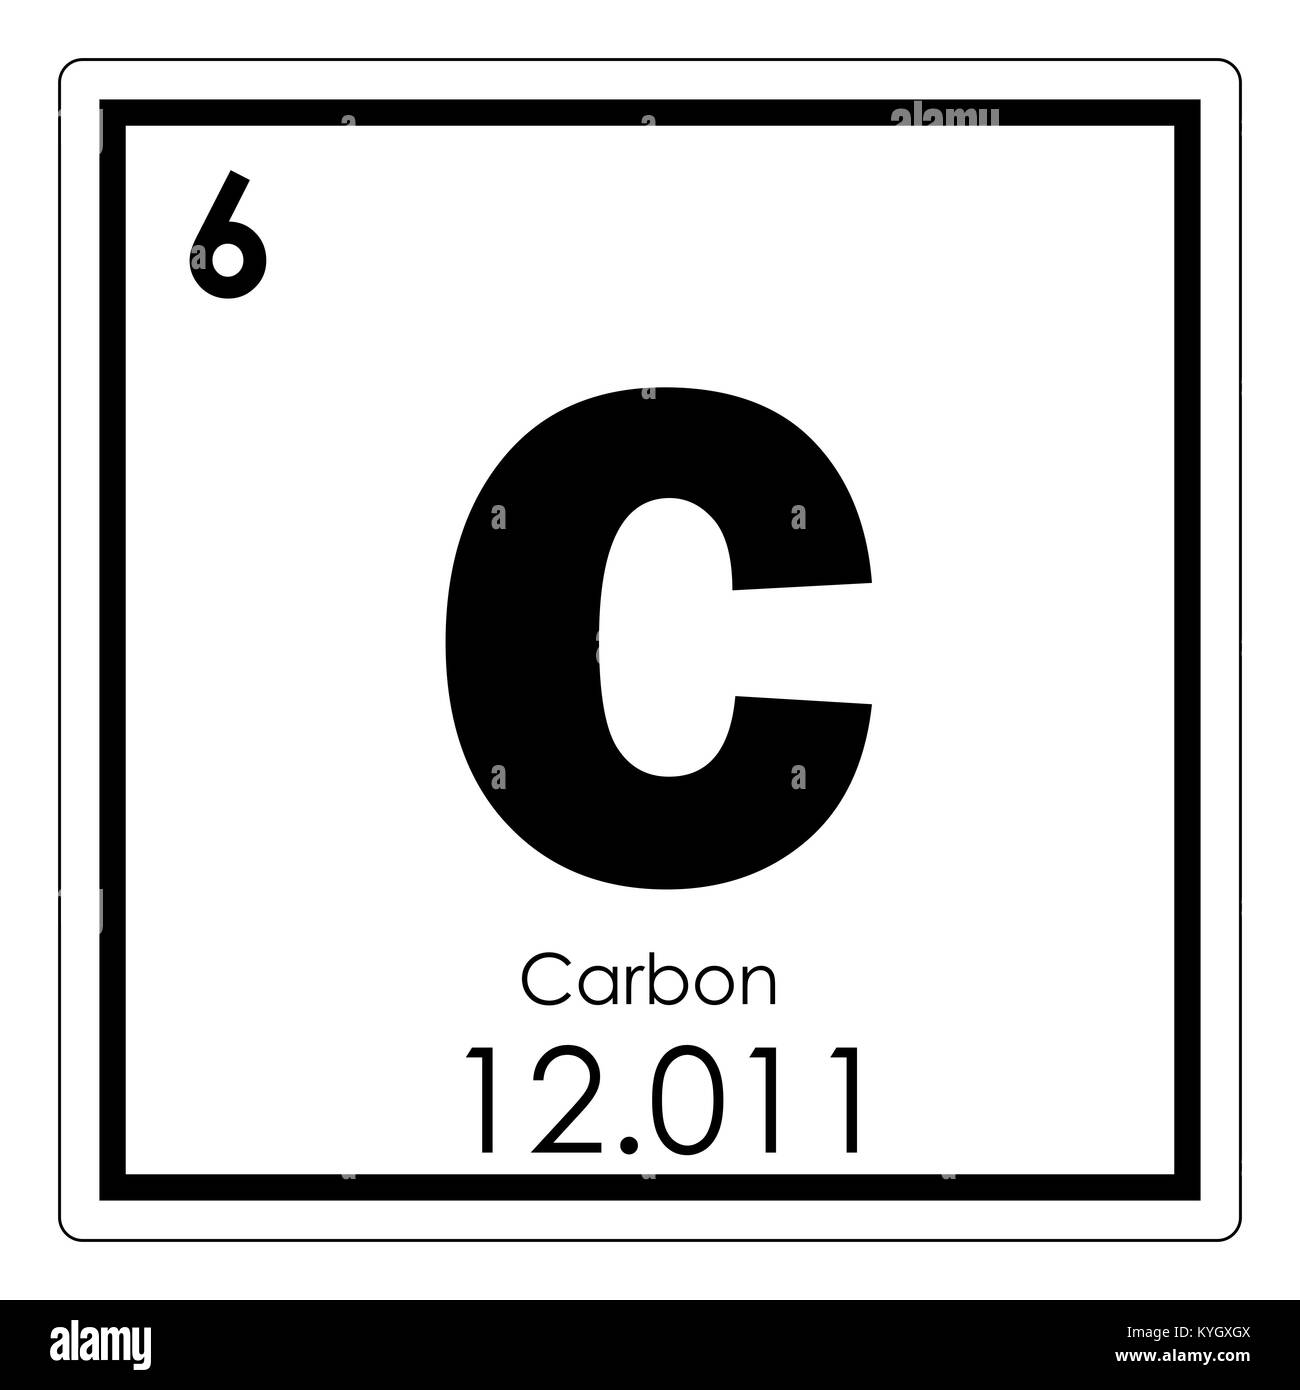 Carbon chemical element periodic table science symbol stock photo carbon chemical element periodic table science symbol urtaz Image collections